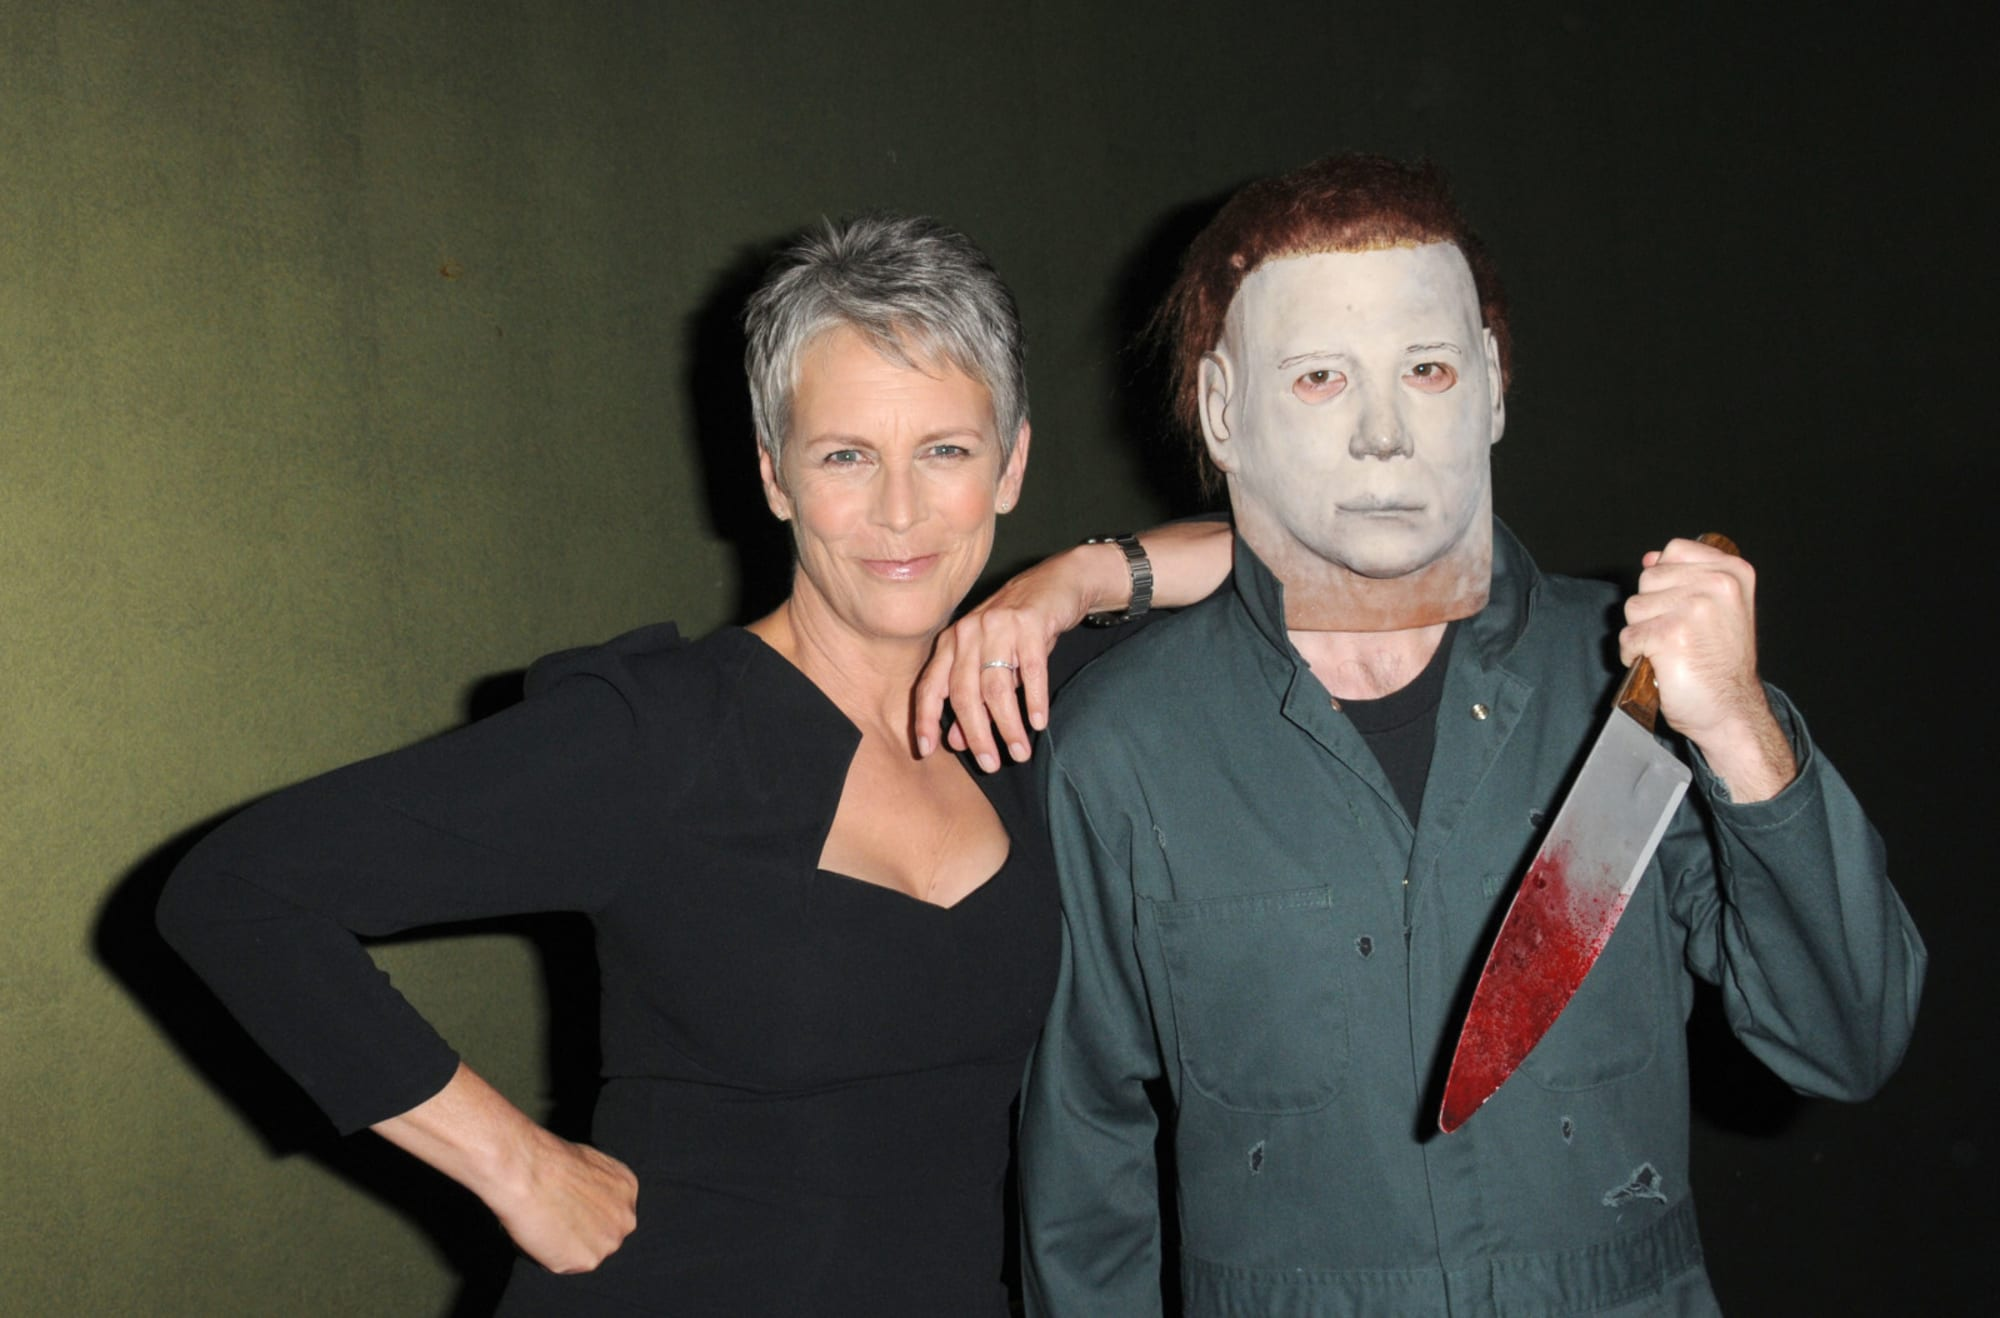 Jamie Lee Curtis and Michael Myers encourage mask wearing